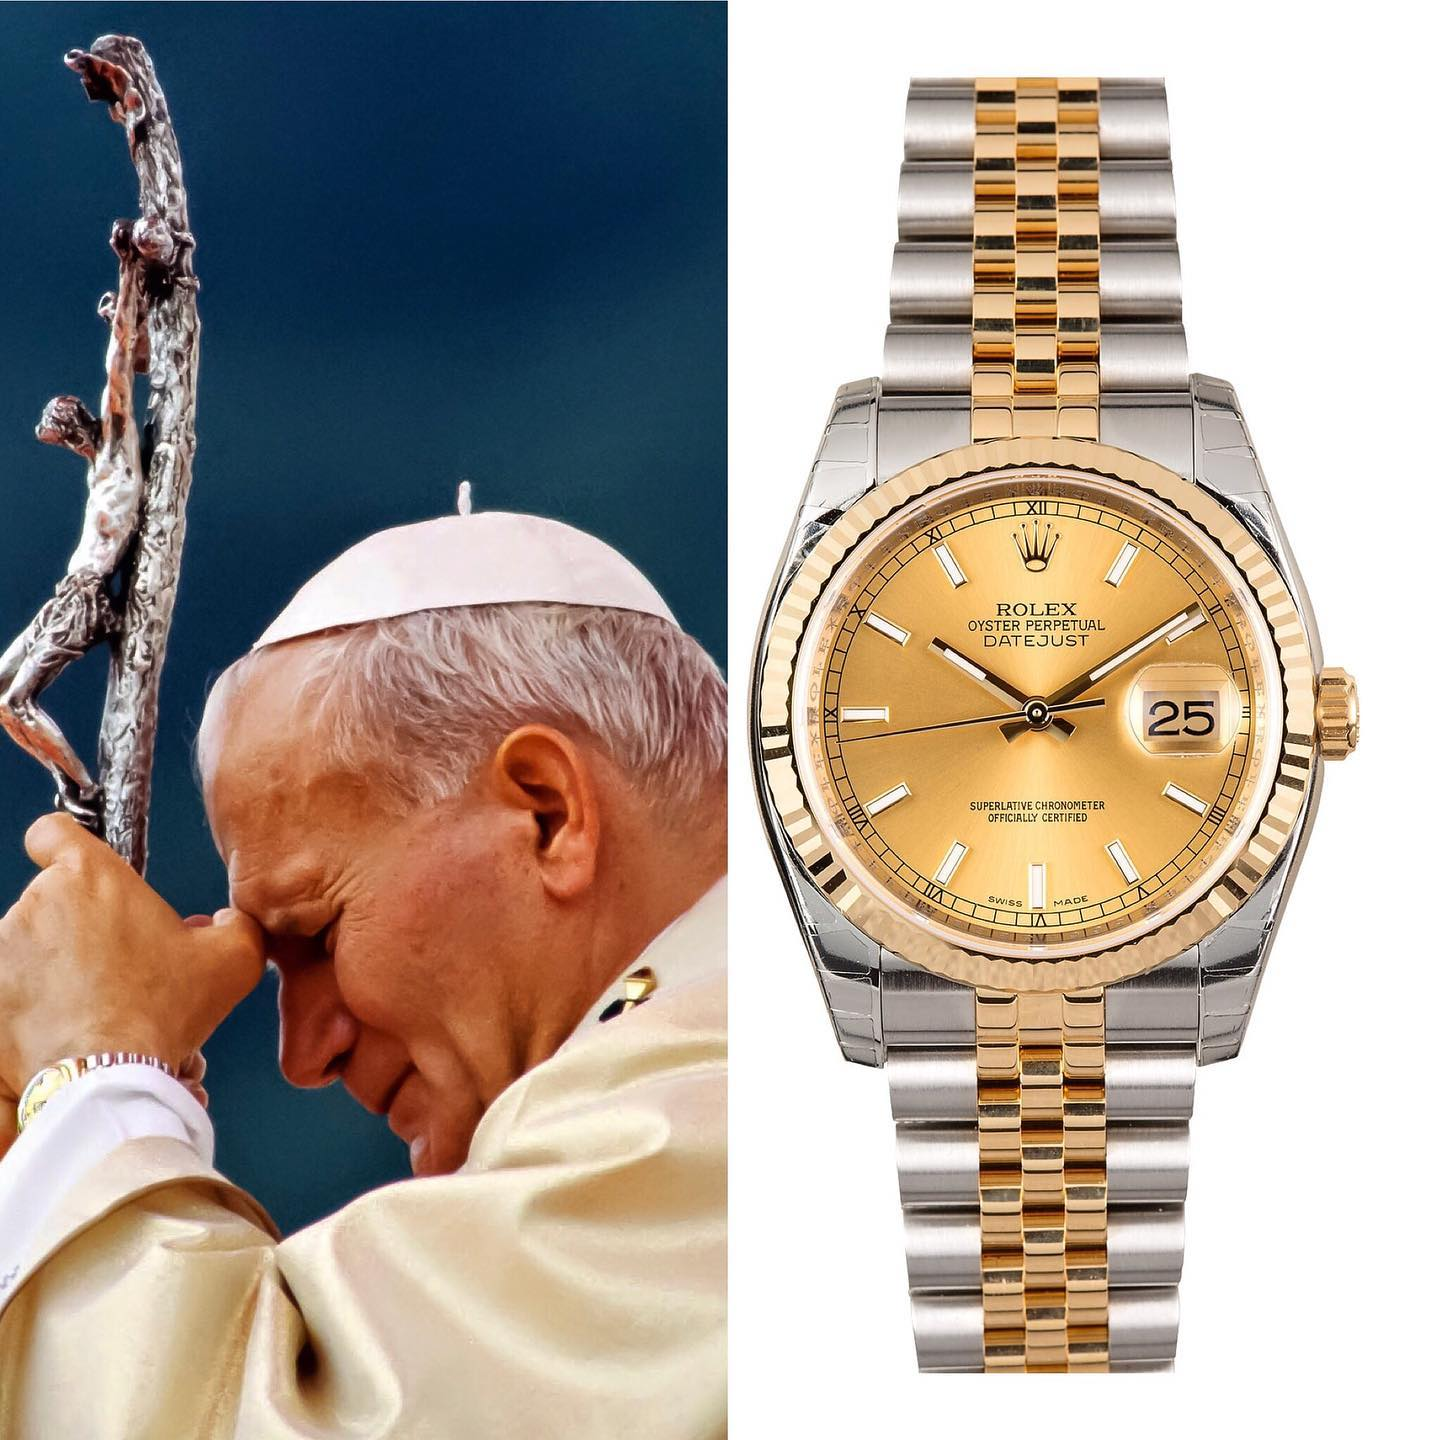 Legendary Pope Johannes Paulus II, known for being shot at close range in an assassination attempt in 1981, was the owner of a 36mm two-tone Rolex Datejust Jubilee Bracelet ref.16233 ️ He died in 2005 due to old age. ️ 6,799.00 📸 @superwatchman